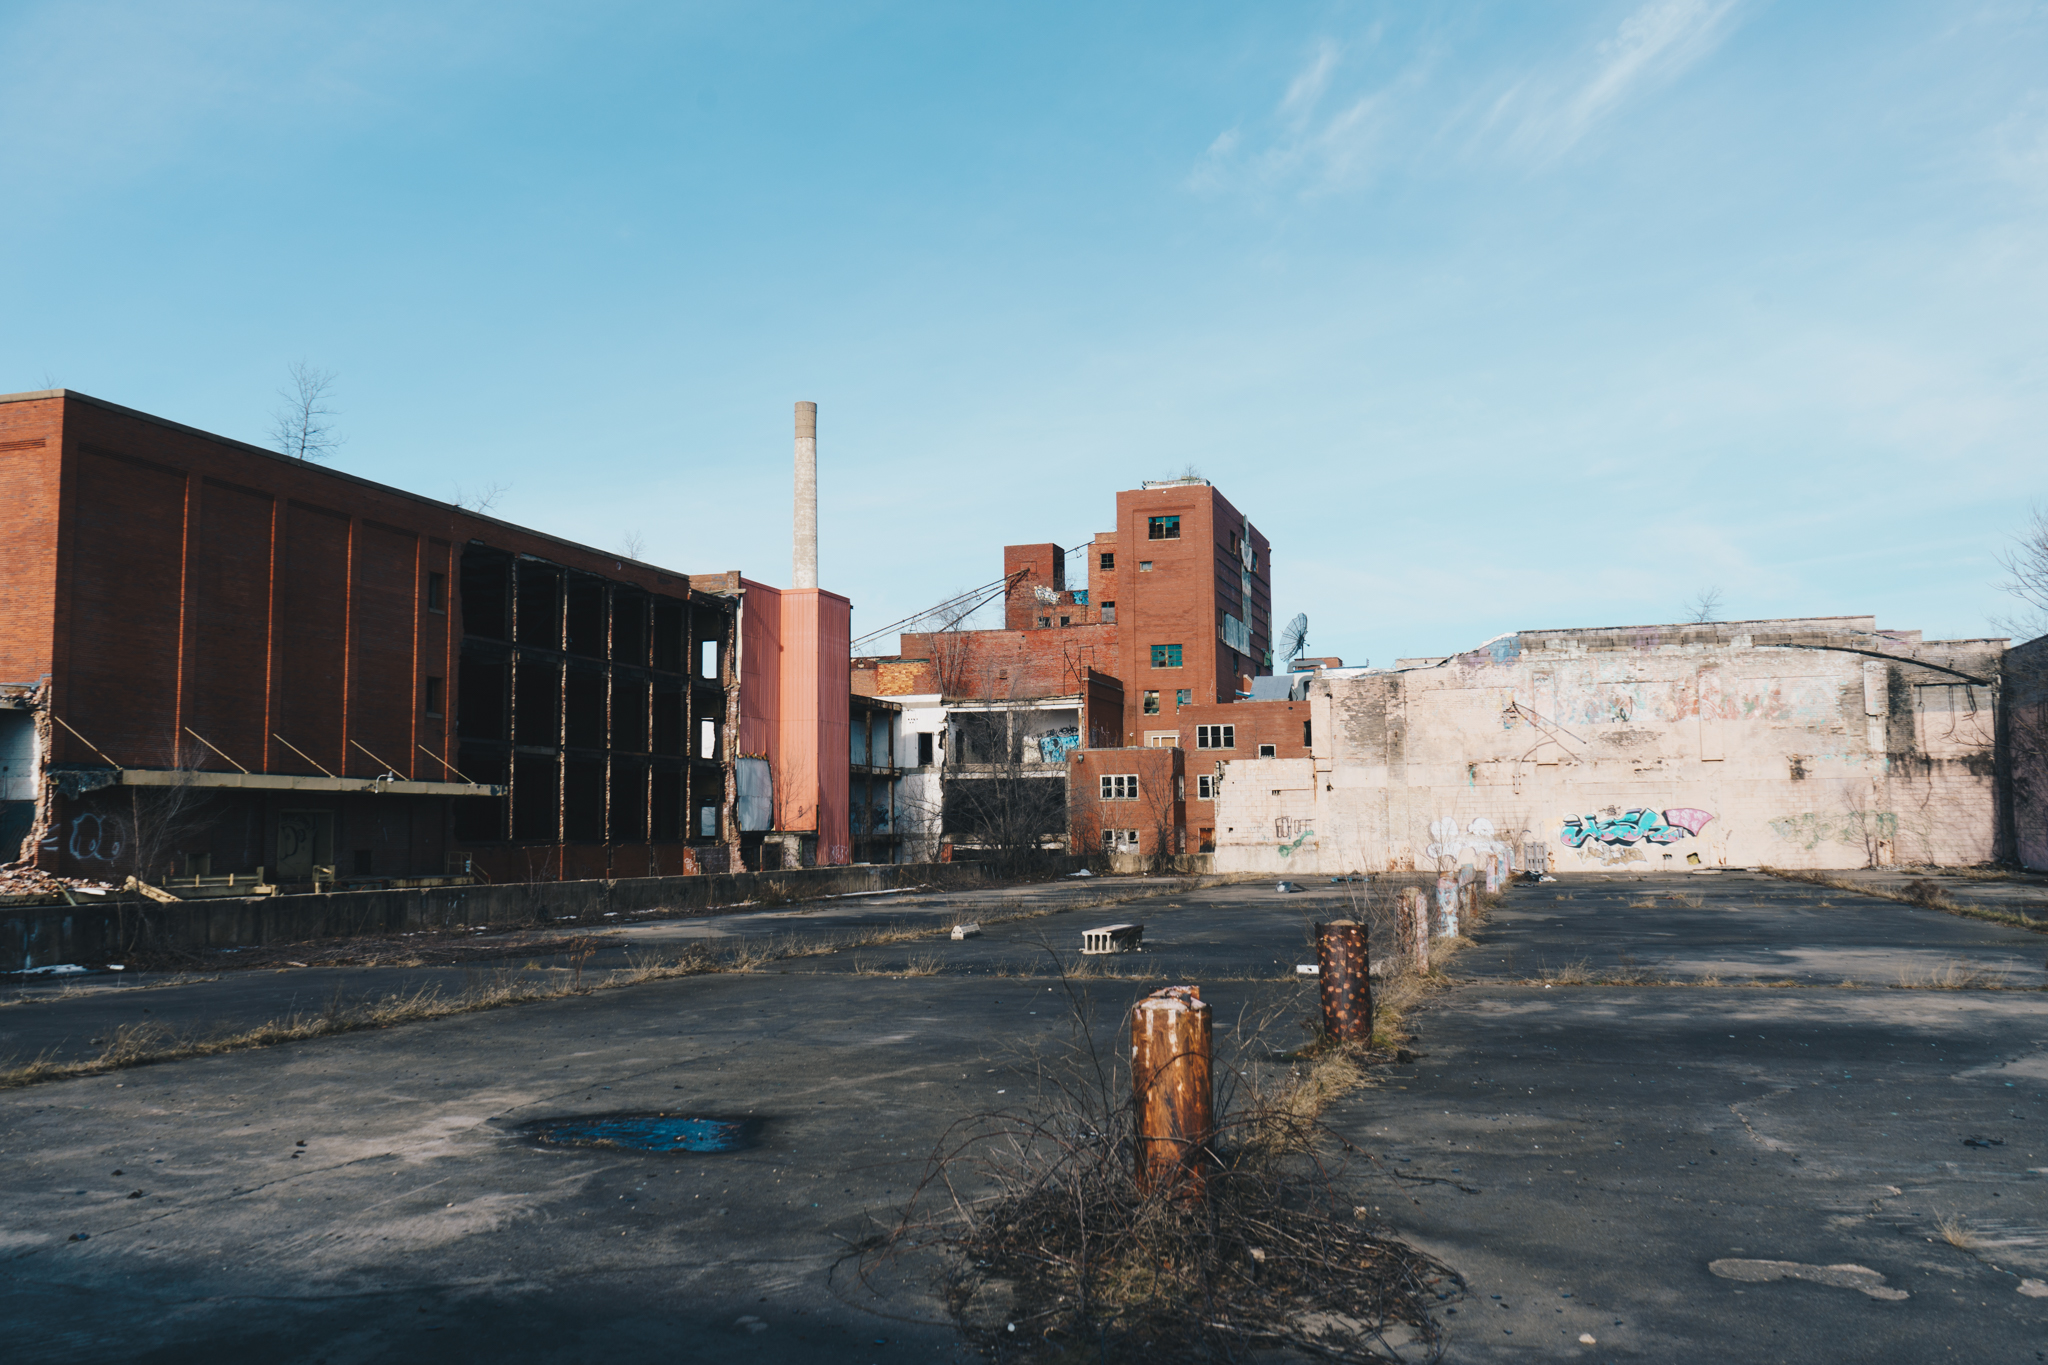 Drewry's No. 2   A view from within the since-demolished Muessel–Drewry's Brewery on the North West side of South Bend. This photograph was featured in our January 2017 story  Drewry's Brewery .